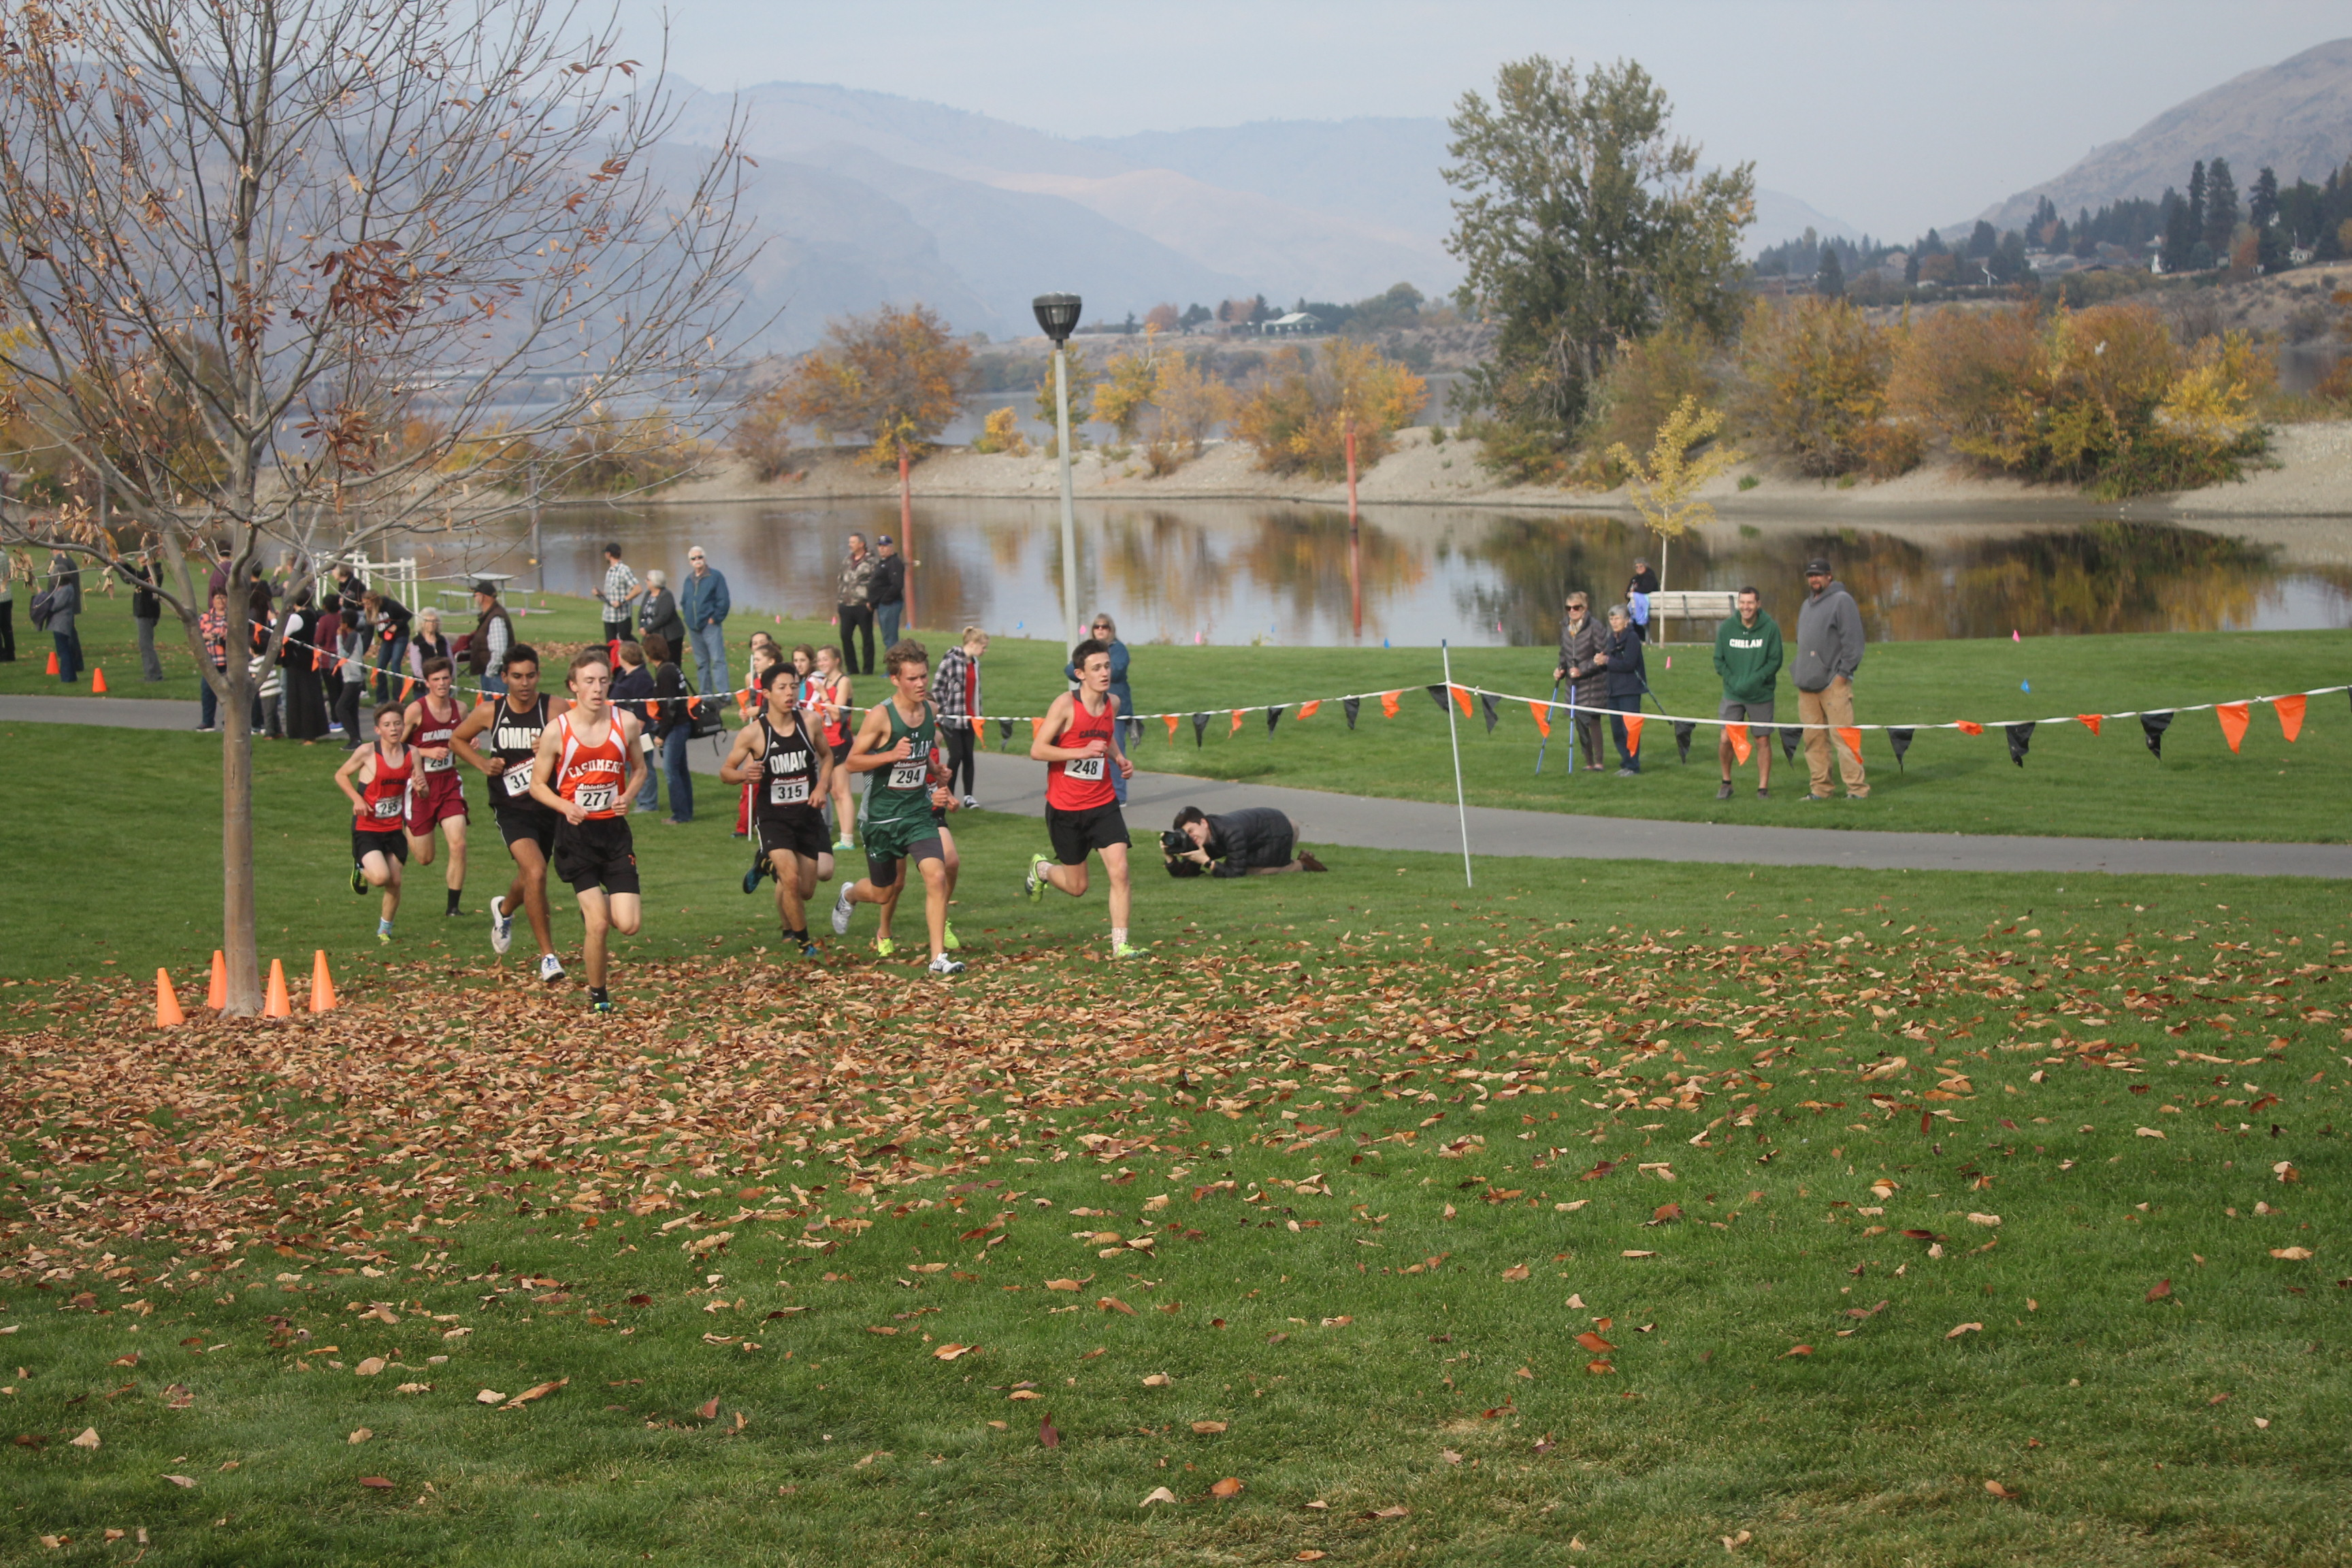 The boys' varsity race kicks off and the crowd slowly thins out.